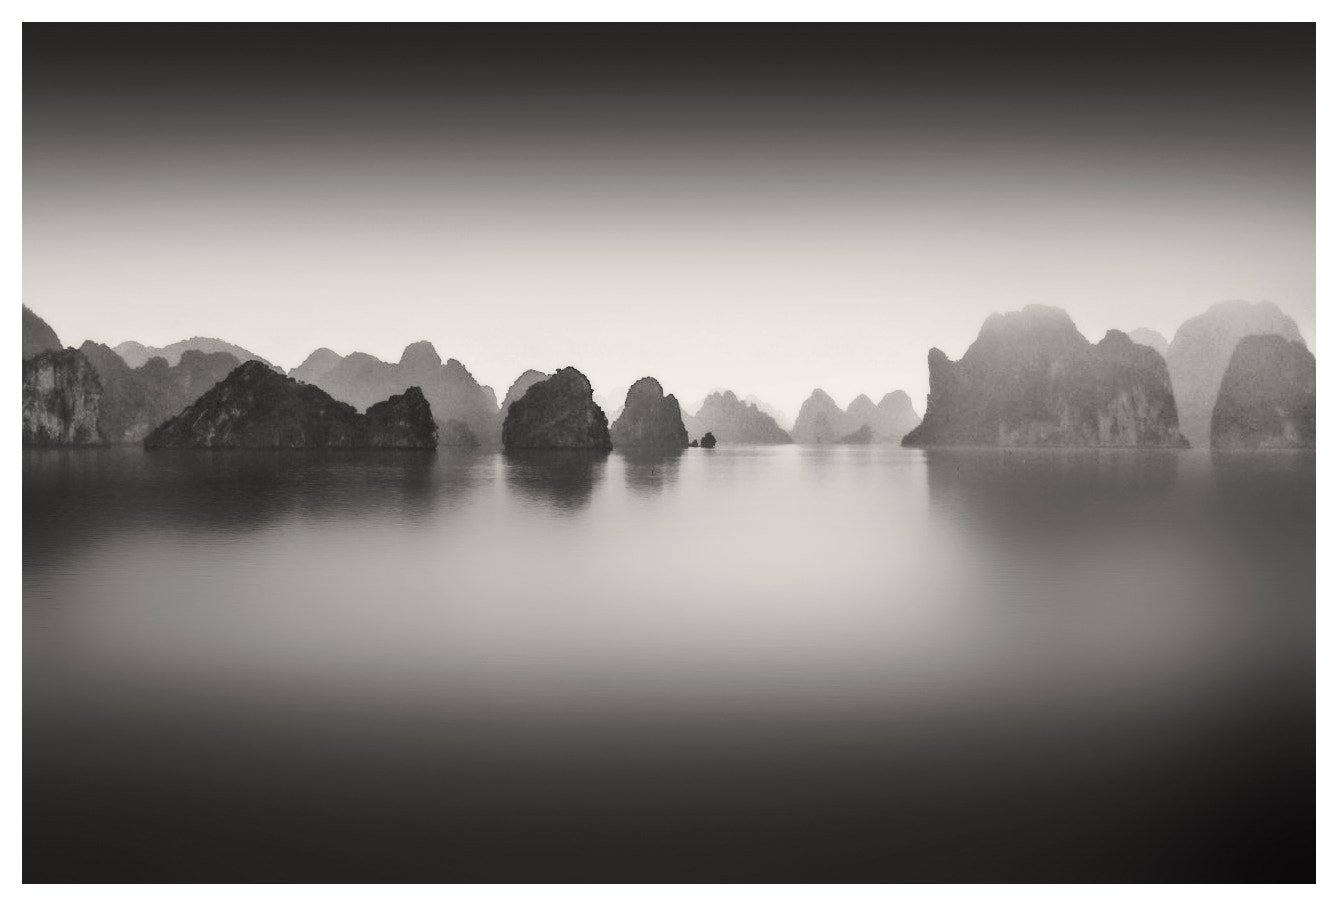 Photograph Halong Bay, Vietnam by Roy Zipstein on 500px